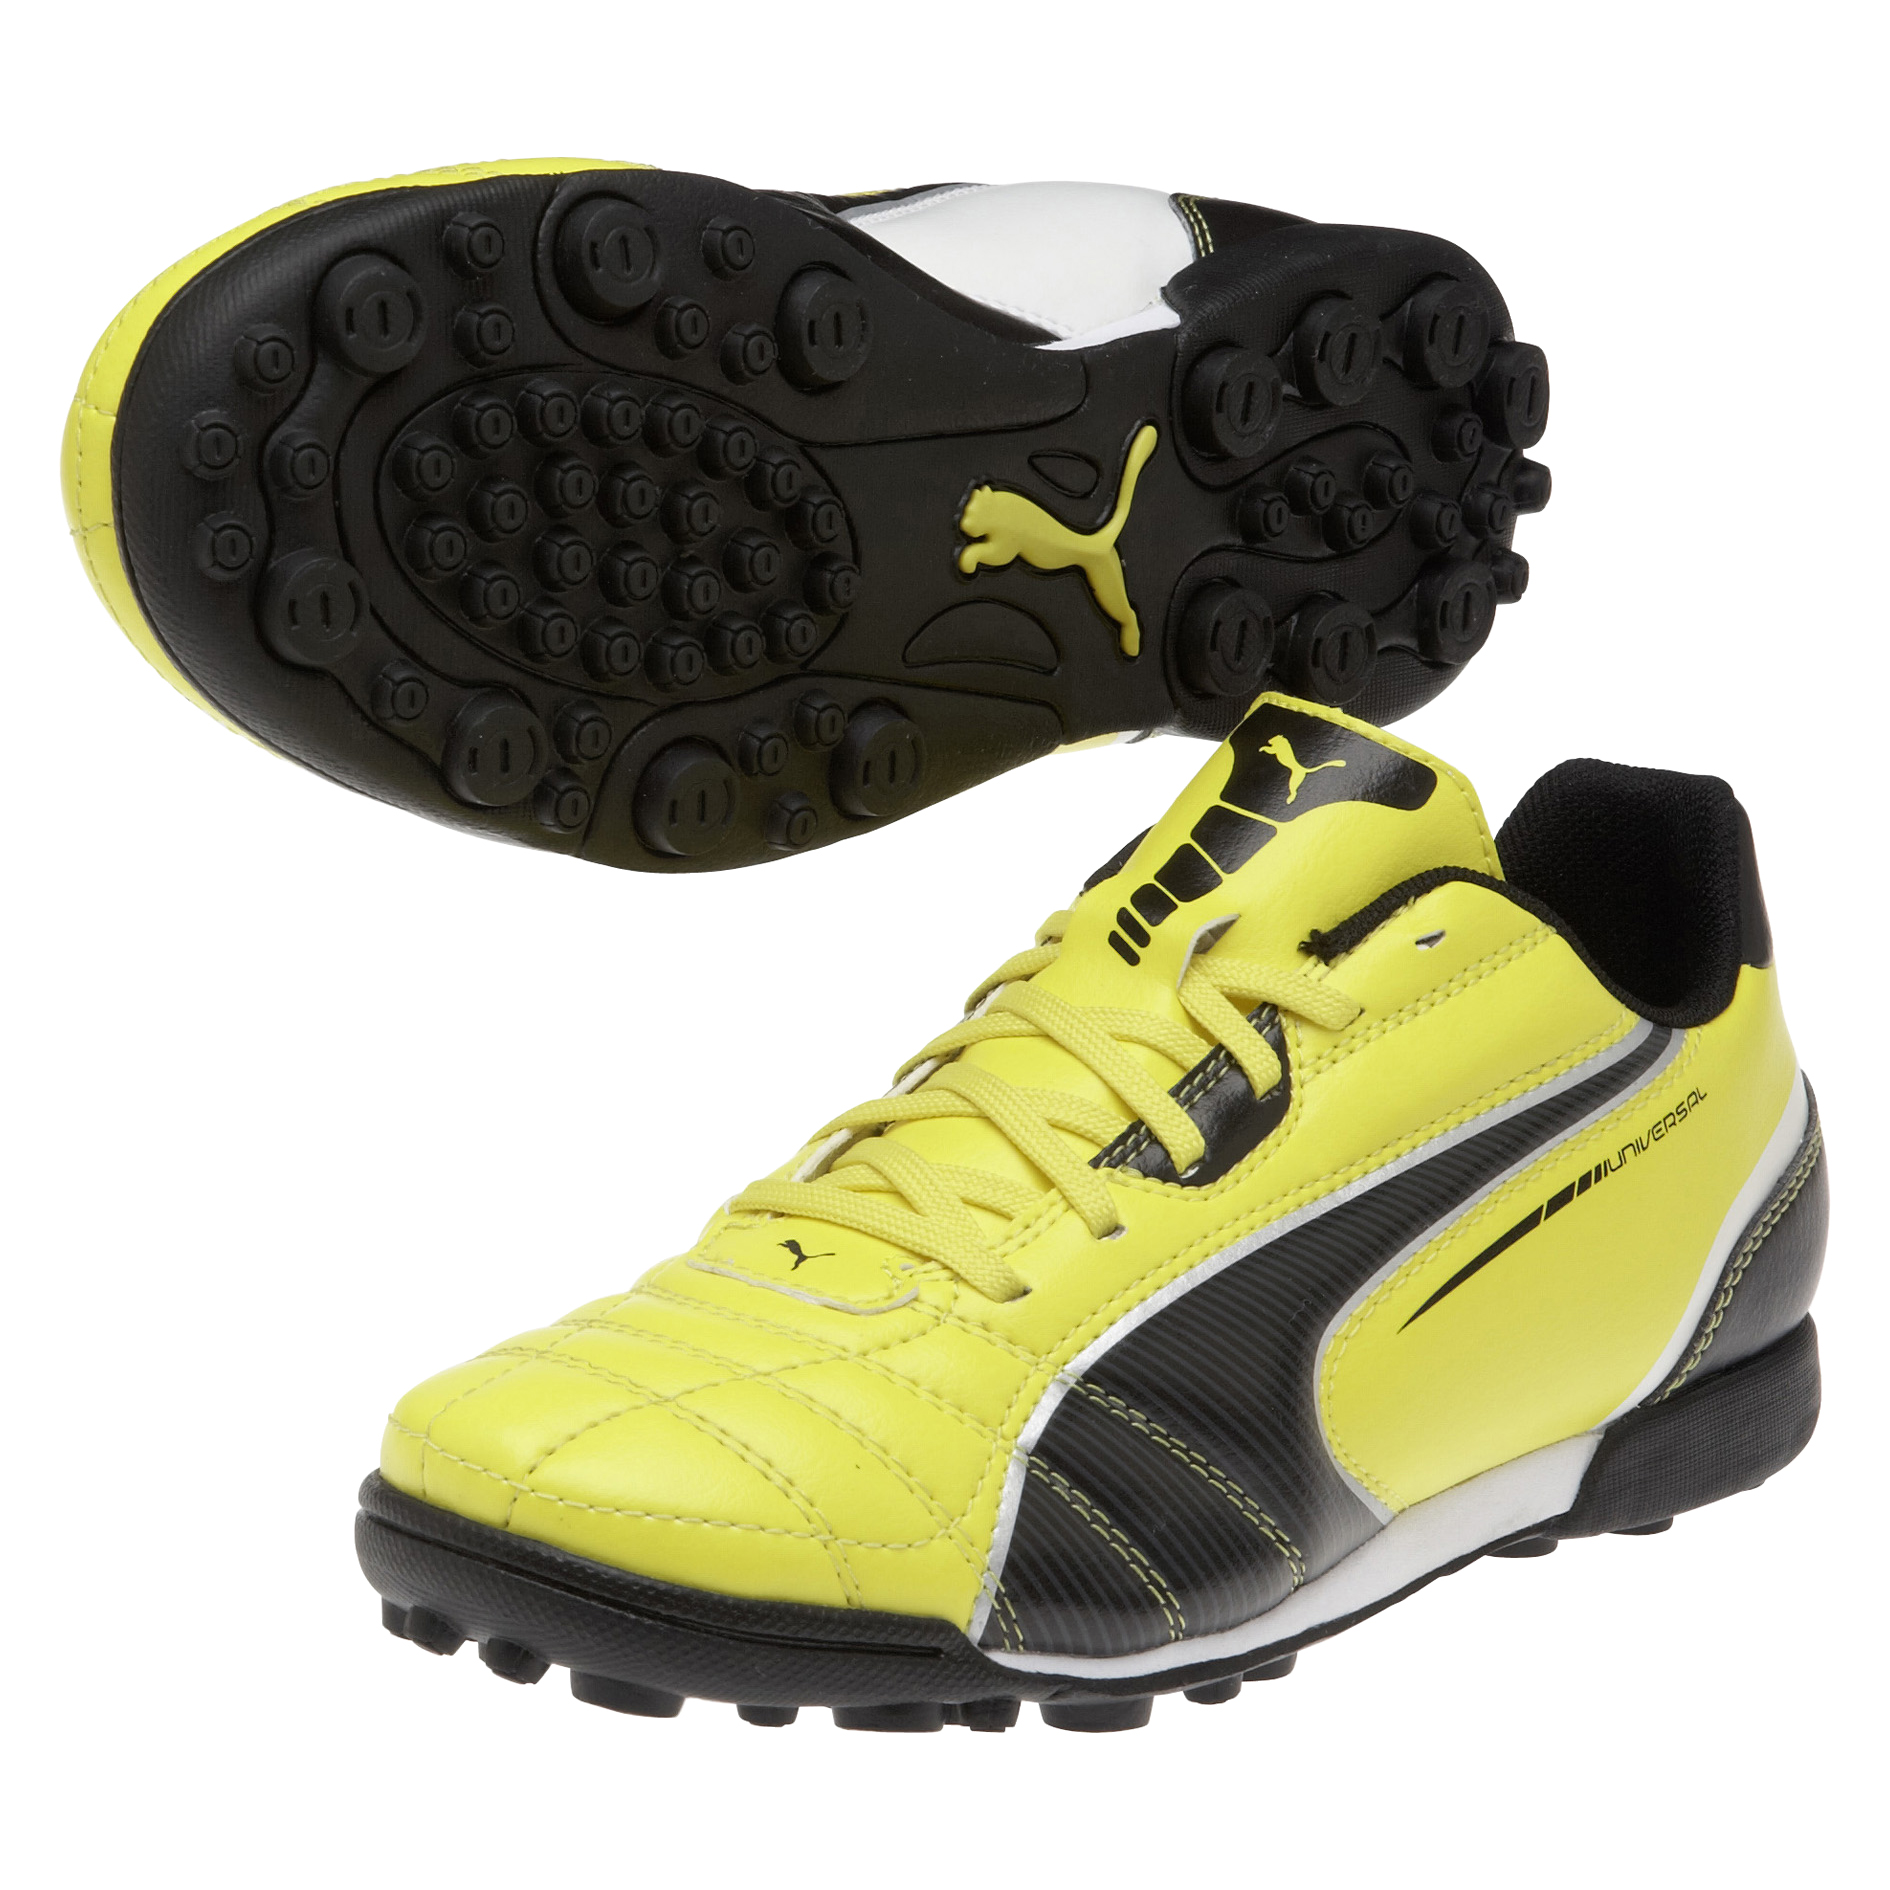 Puma Universal Astroturf Trainers - Blazing Yellow/Black/White - Kids